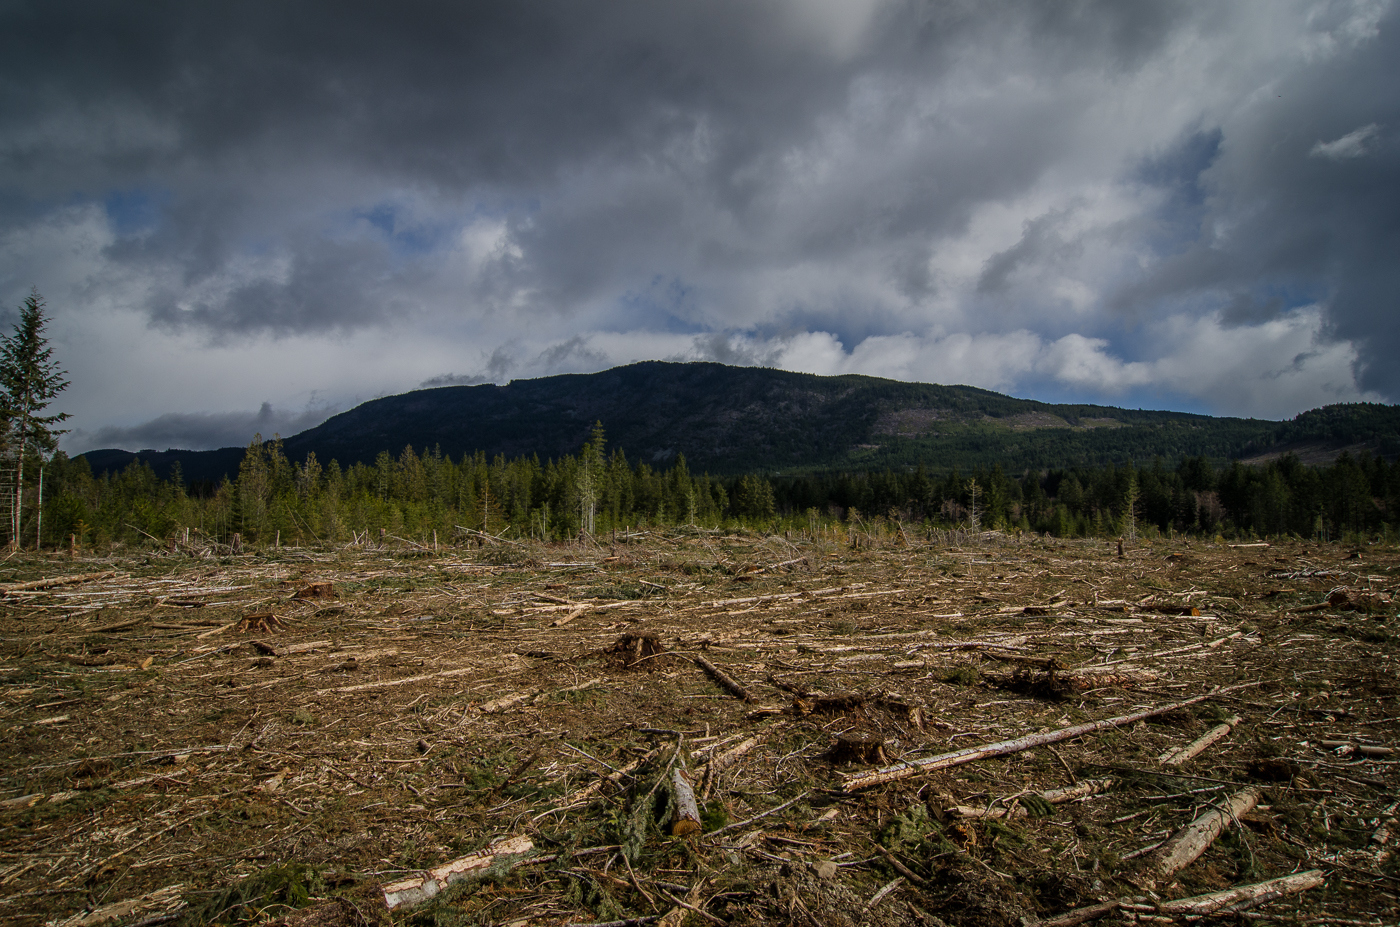 Cutblock near Nanaimo.  While it looks sad, this is a 2nd or 3rd growth cutblock, the future of sustainable logging.